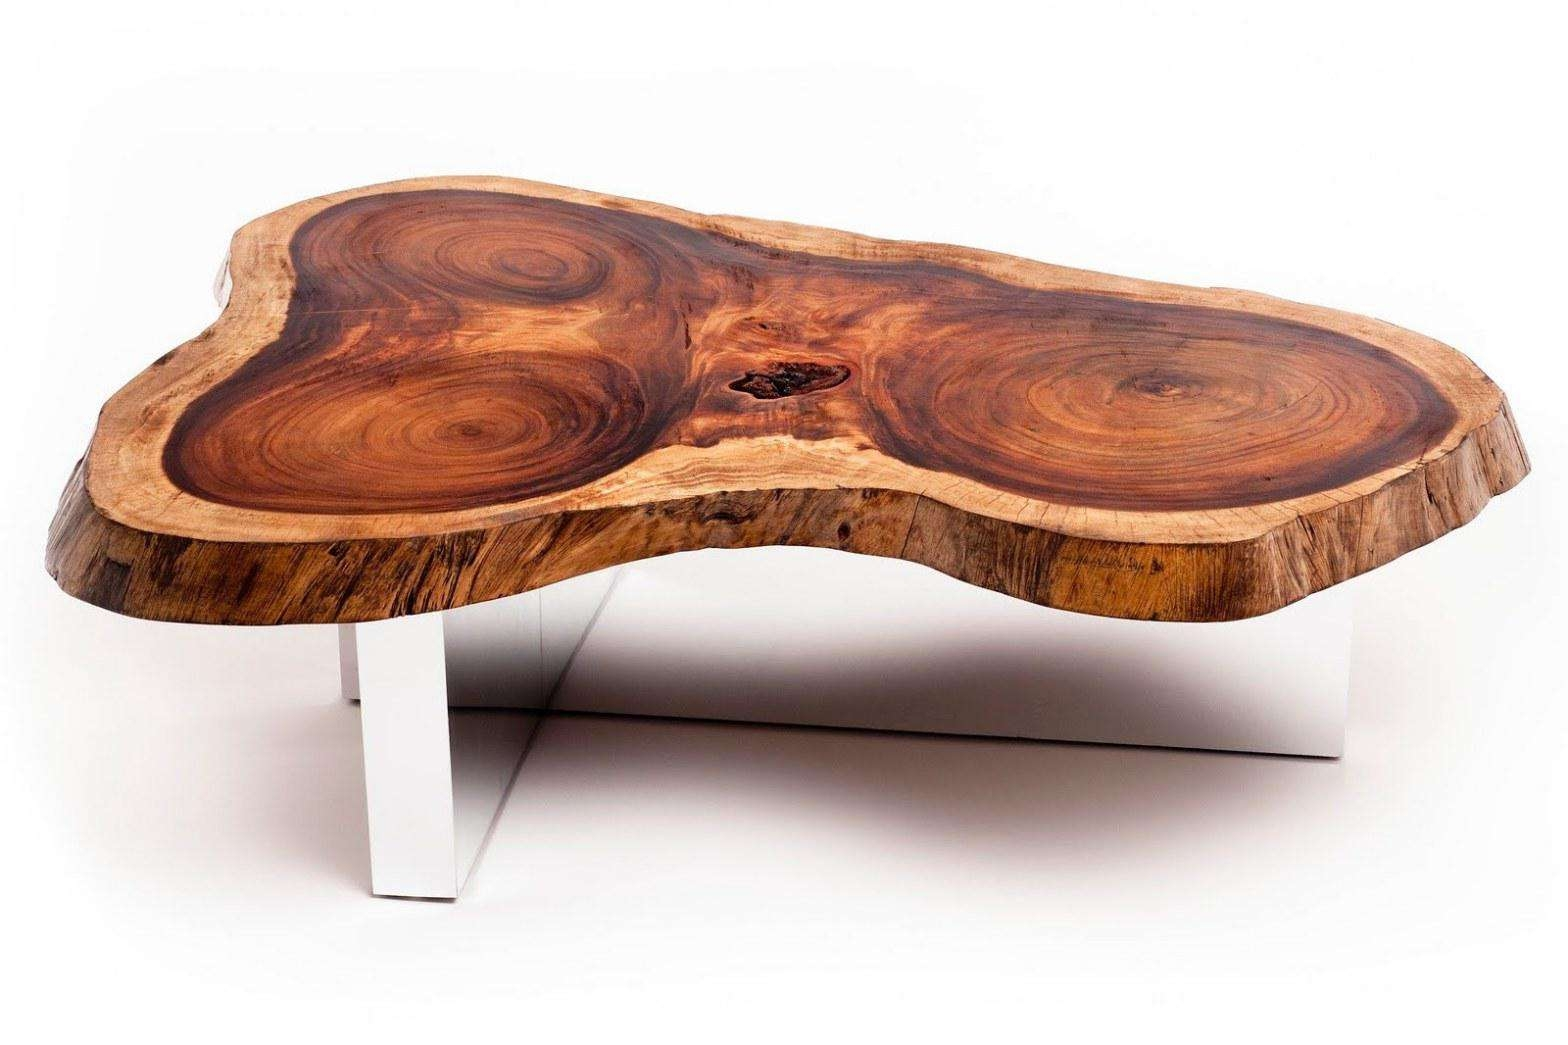 Coffee Tables : Natural Wood Slab Coffee Table Tree Round And With Regard To Favorite High Quality Coffee Tables (View 2 of 20)